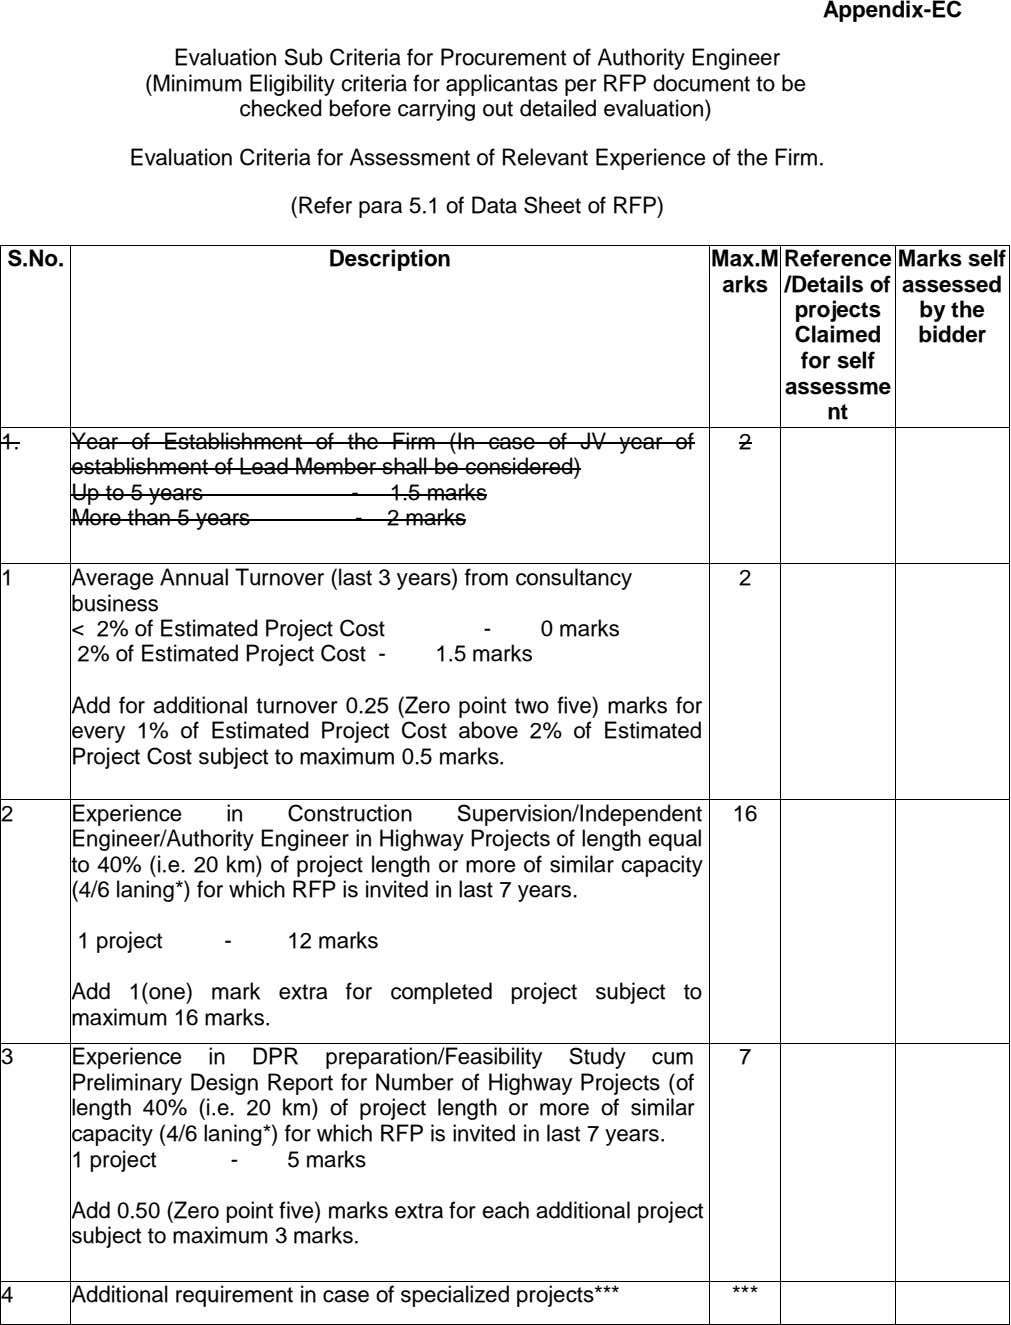 Appendix-EC Evaluation Sub Criteria for Procurement of Authority Engineer (Minimum Eligibility criteria for applicantas per RFP